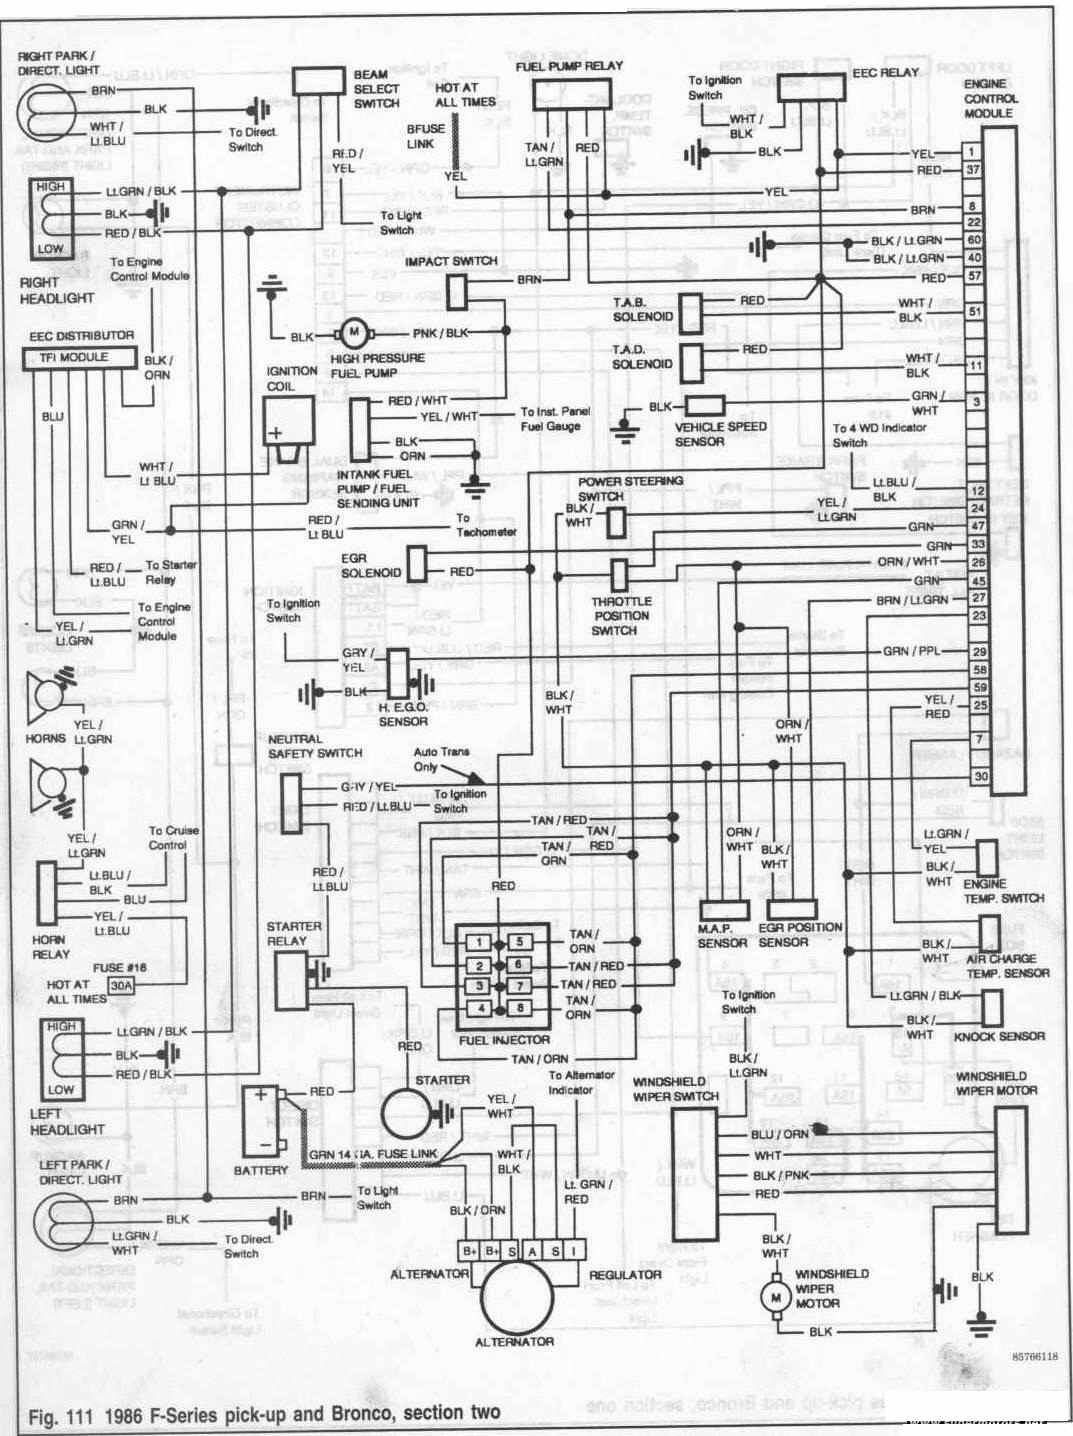 1986 C10 Air Conditioner Diagram further 1011472 2002 F350 Fwd Module Location also Ford Mustang V6 And Ford Mustang Gt 2005 2014 Fuse Box Diagram 400063 additionally Ford Bronco And F Series Pickup 1986 in addition Schematics h. on 2002 ford ranger wiper electrical diagram